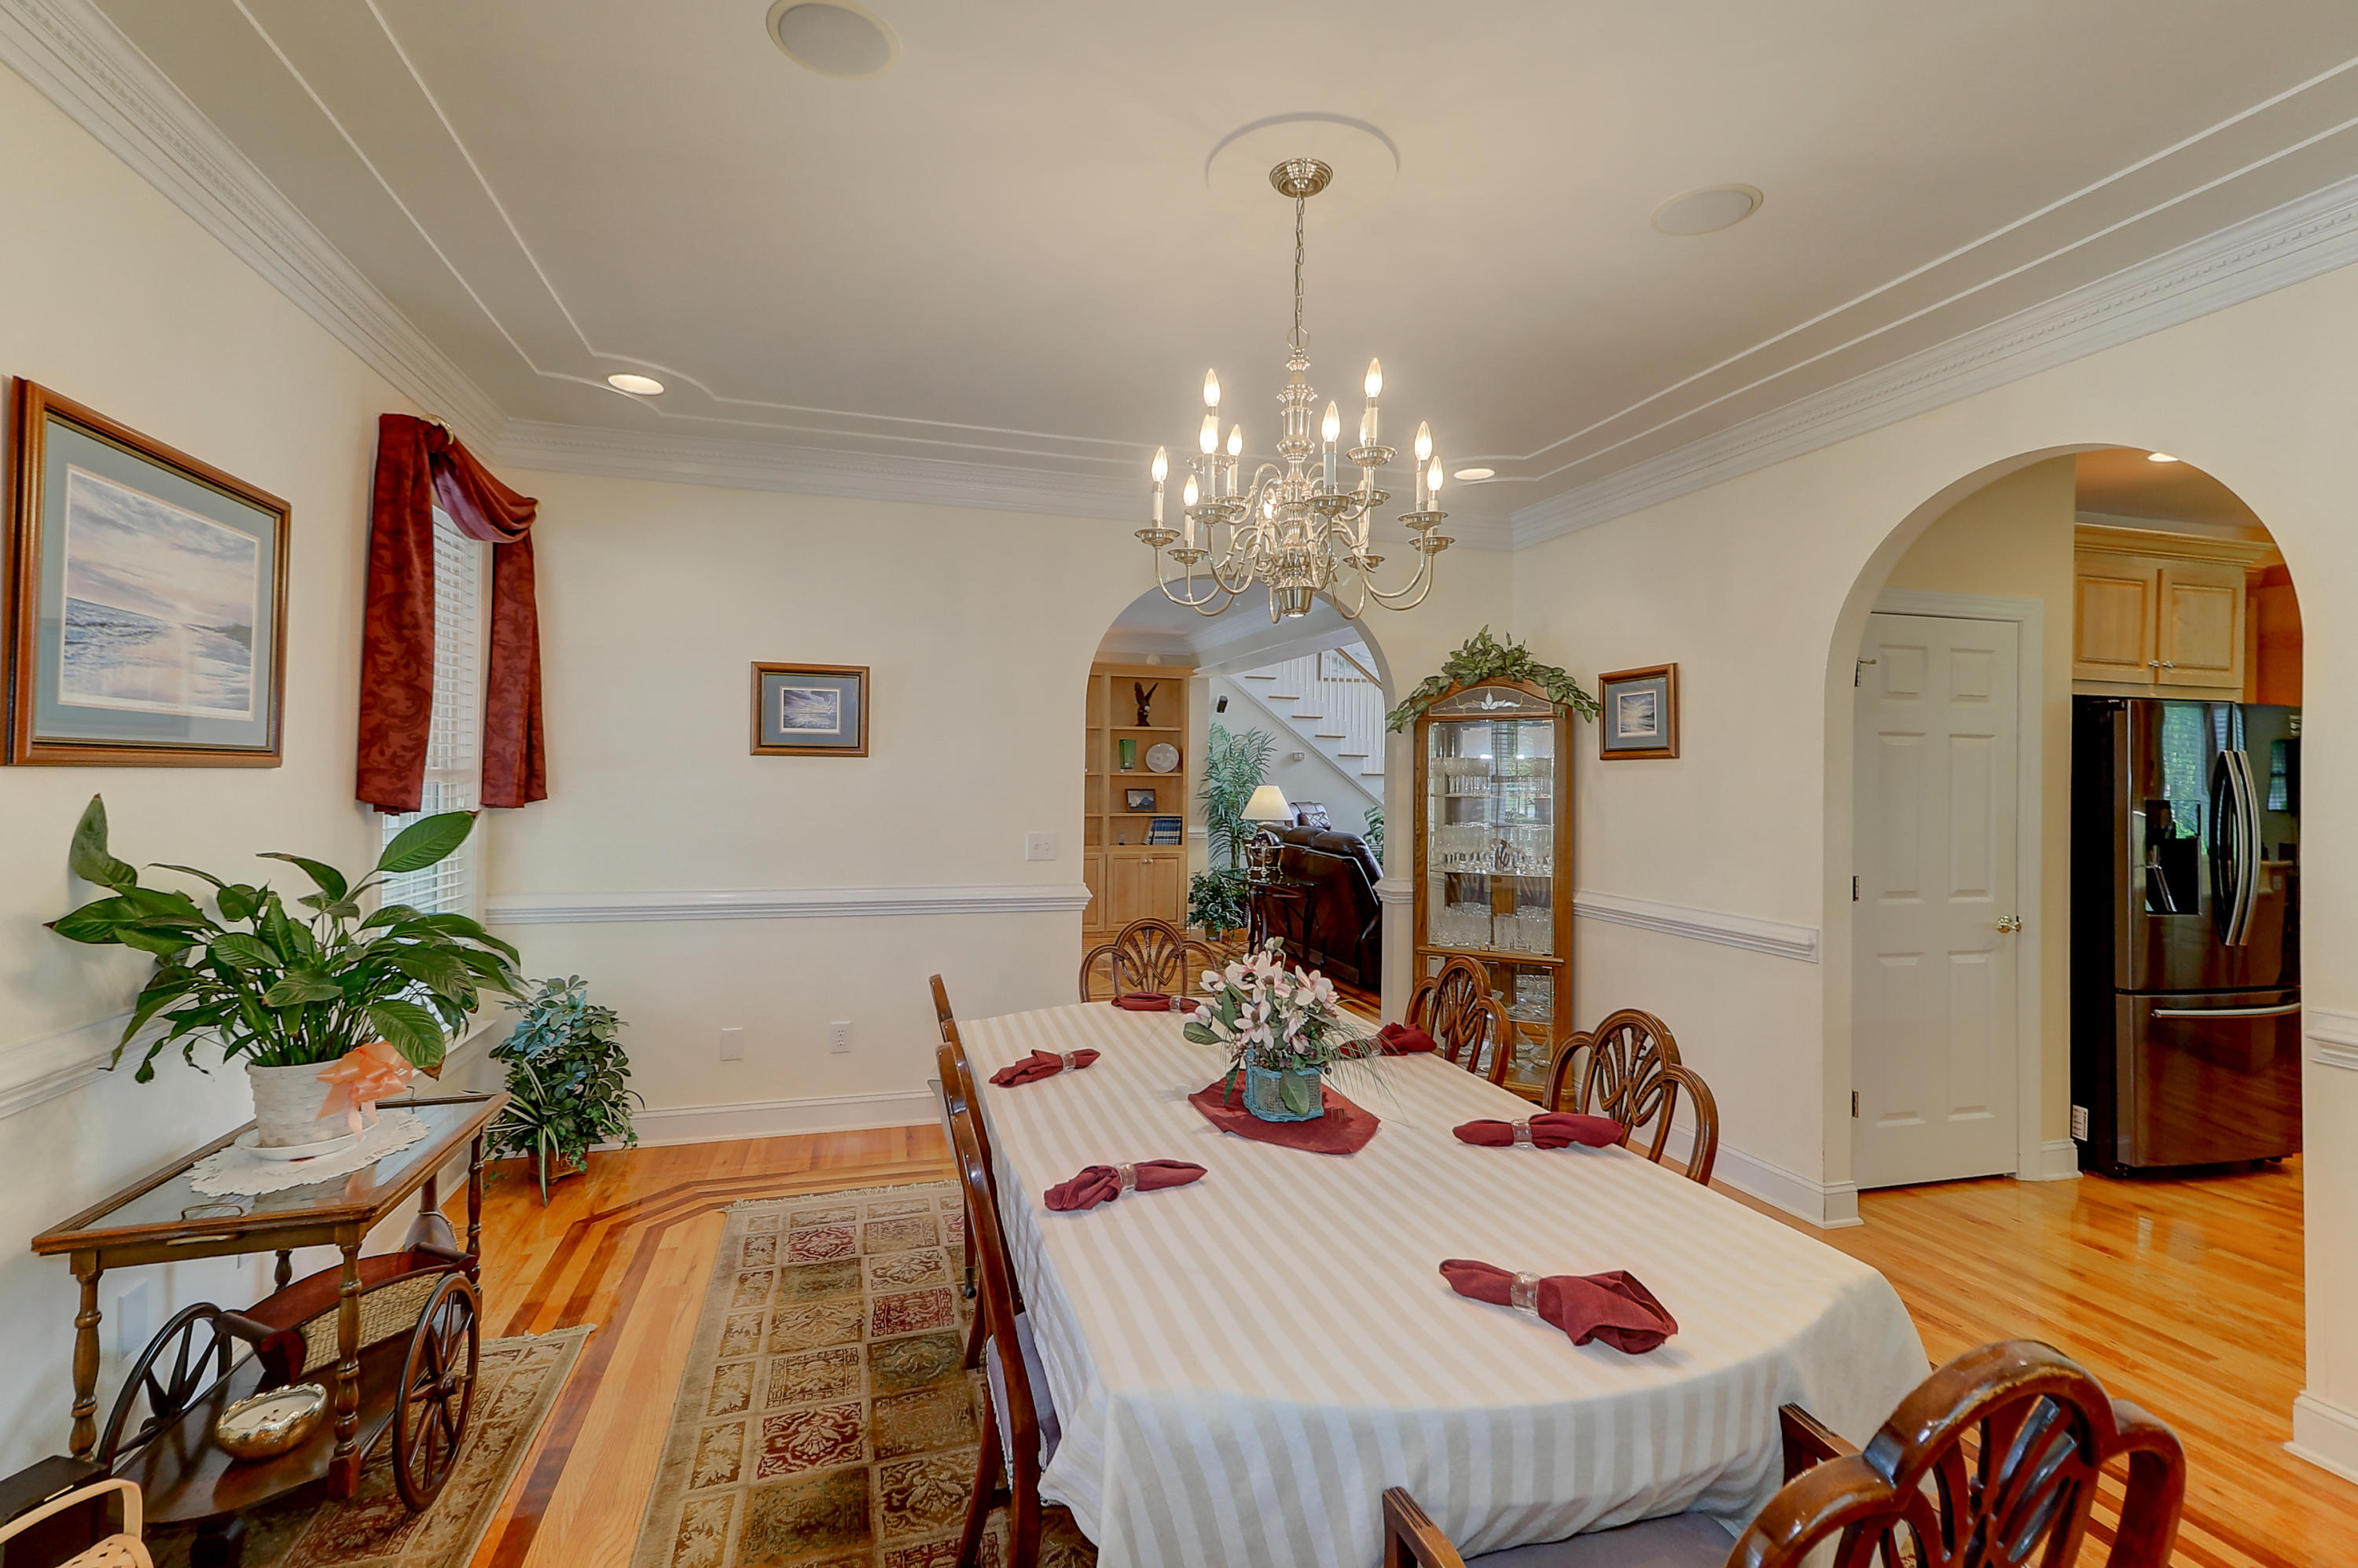 Coosaw Creek Country Club Homes For Sale - 8700 Fairway Woods, North Charleston, SC - 39